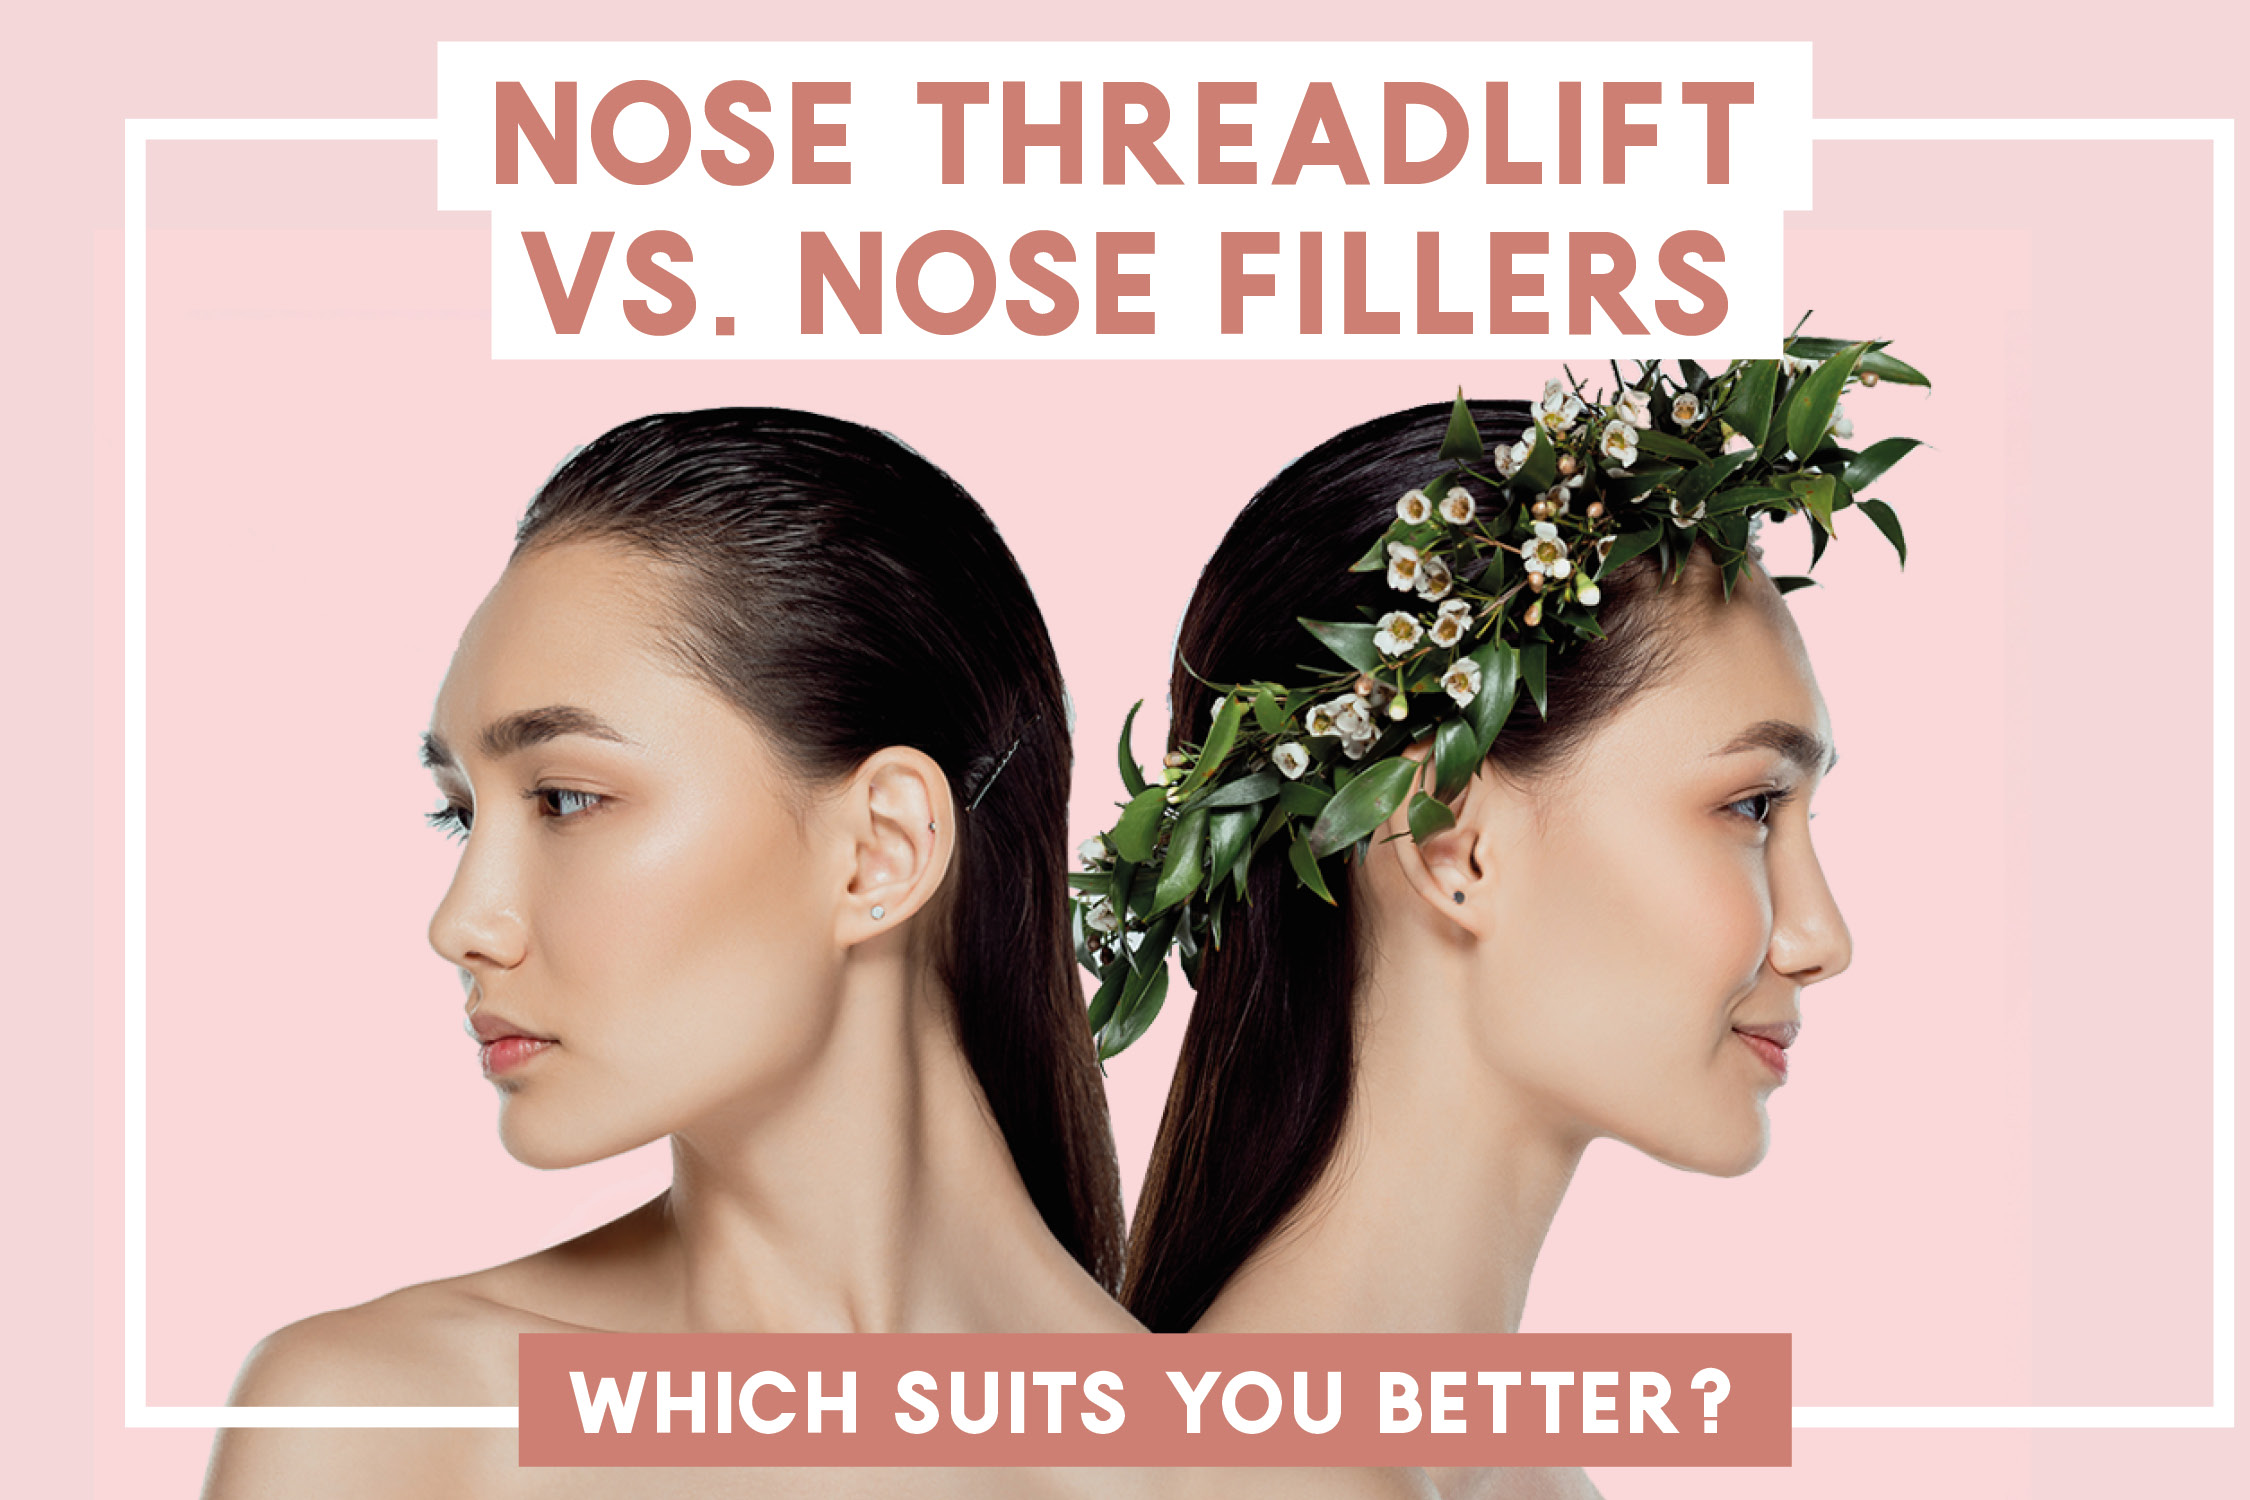 Nose Threadlift VS Nose Filler. Which suits you better?